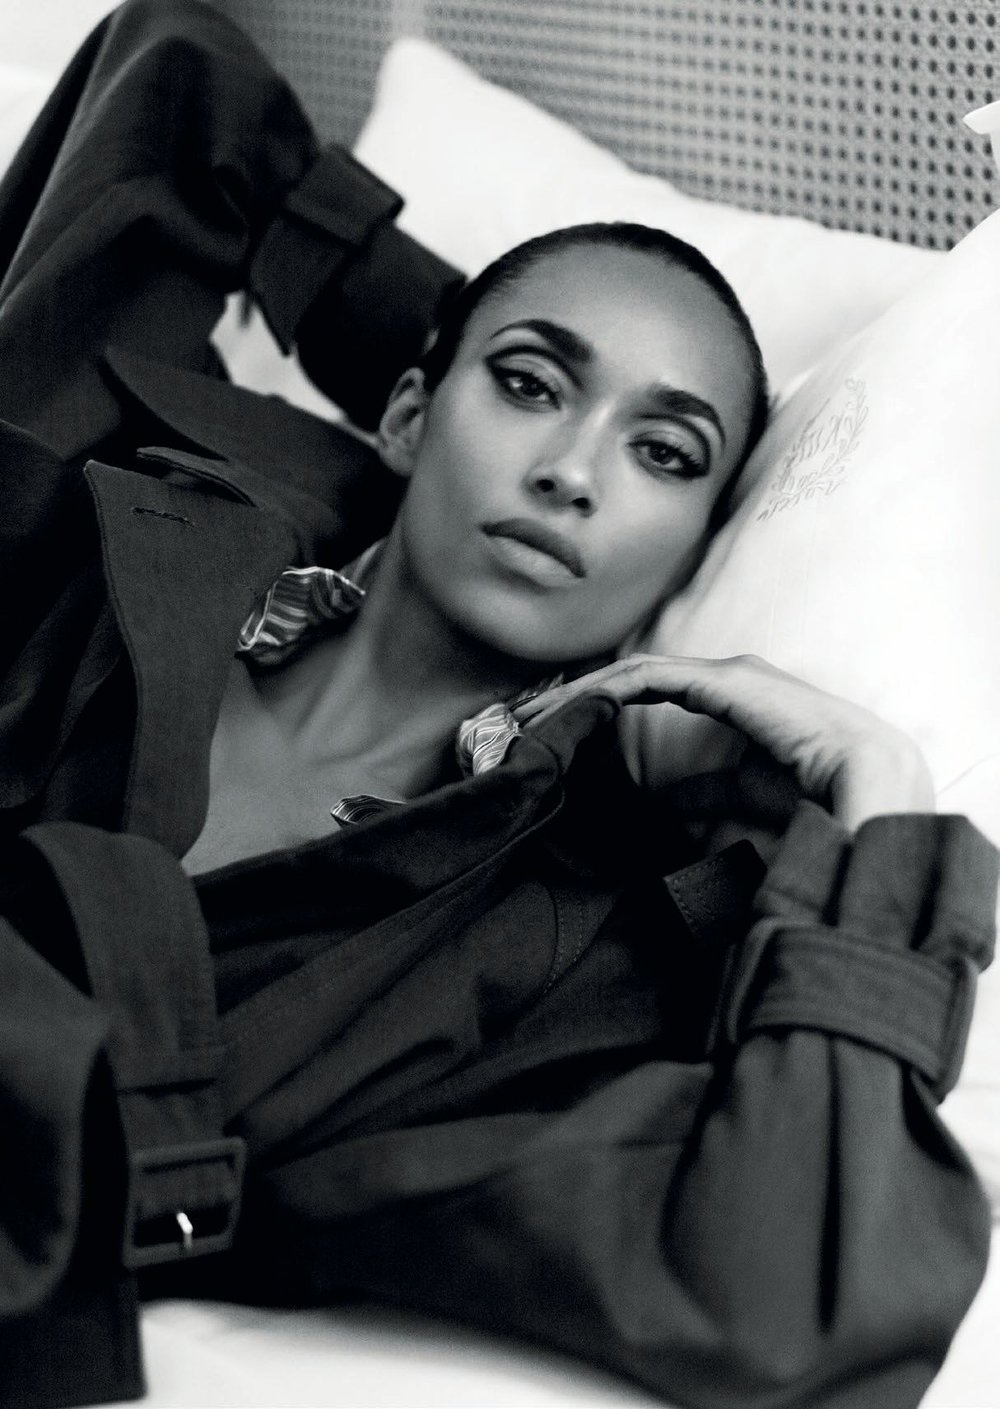 vogue-arabia-march-2017-anais-mali-by-terry-tsiolis-03.jpg